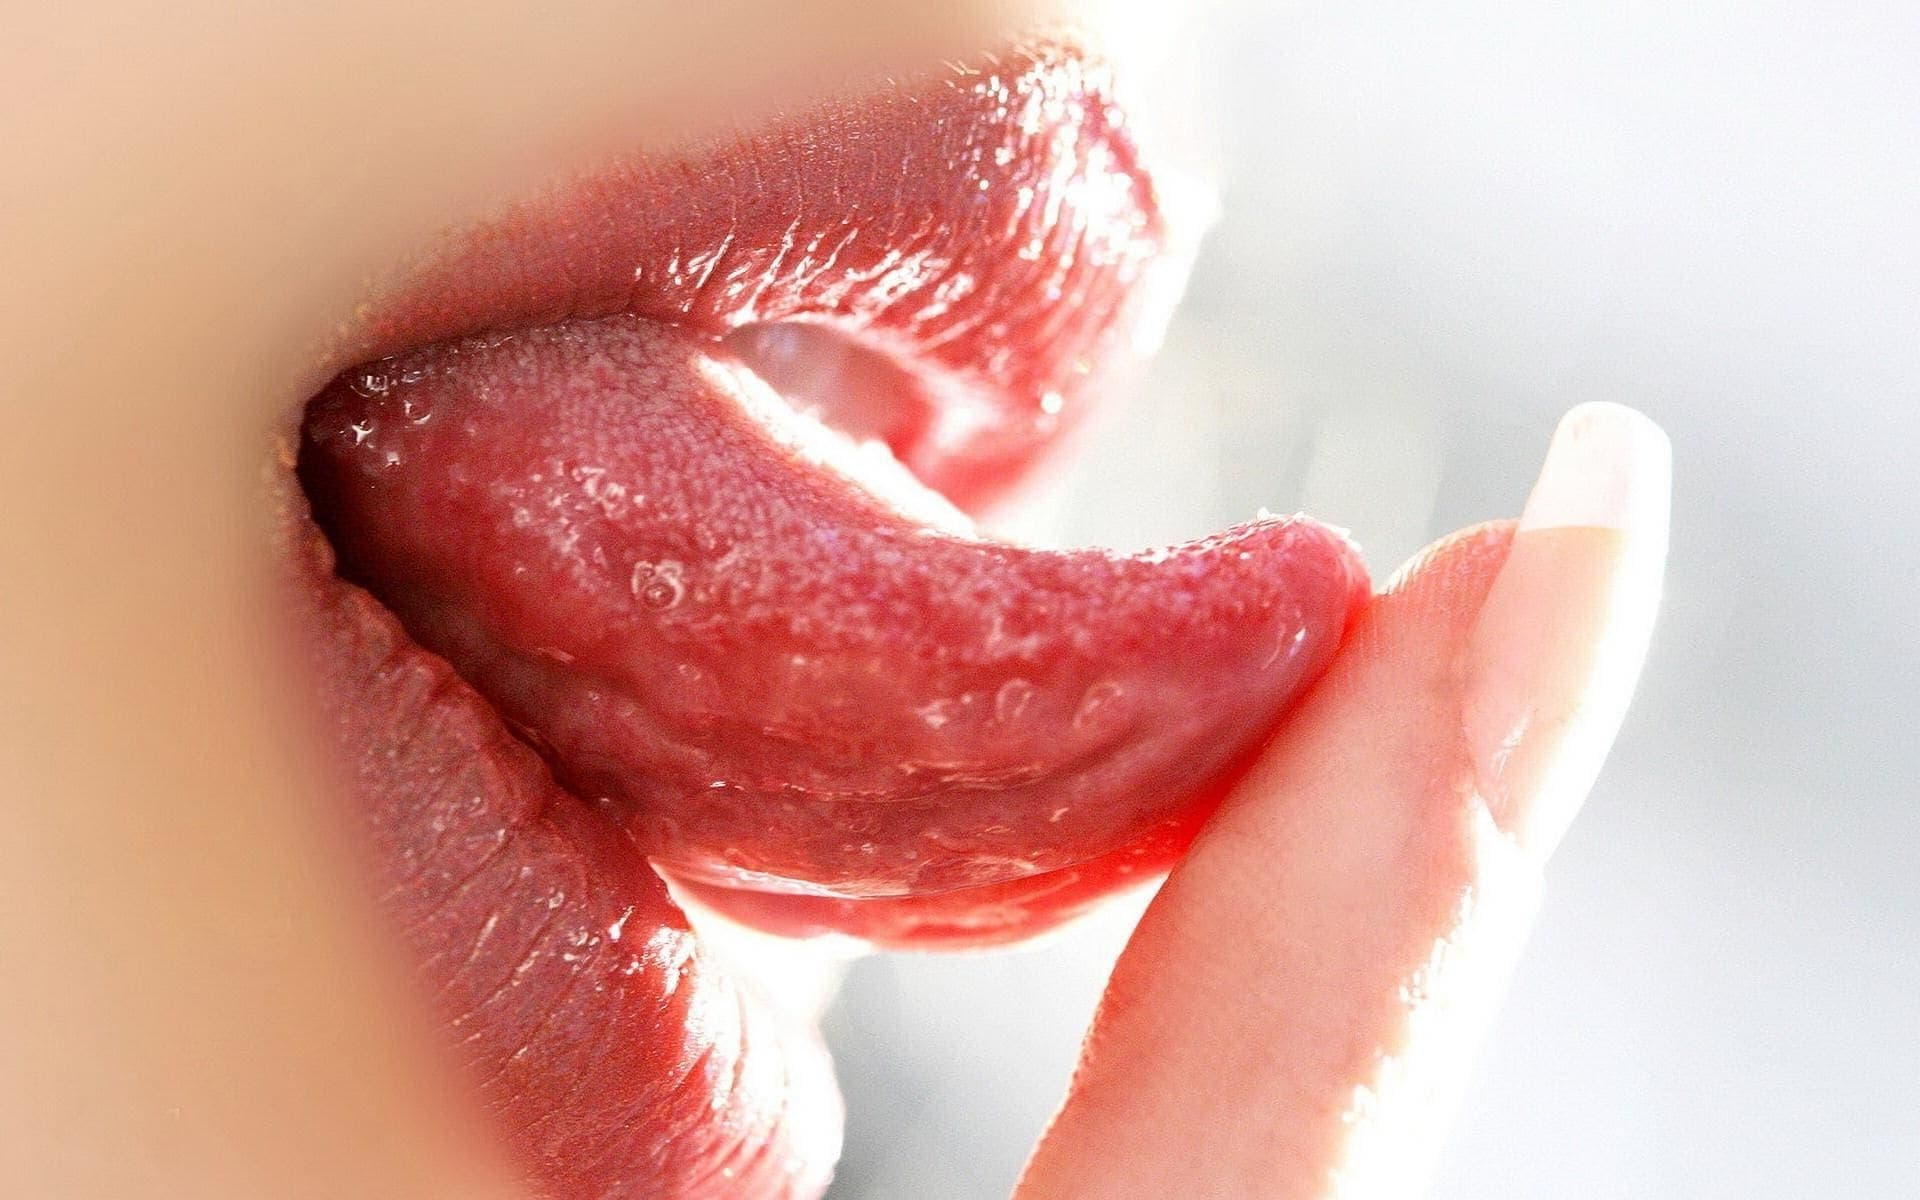 tongue dream meaning, dream about tongue, tongue dream interpretation, seeing in a dream tongue